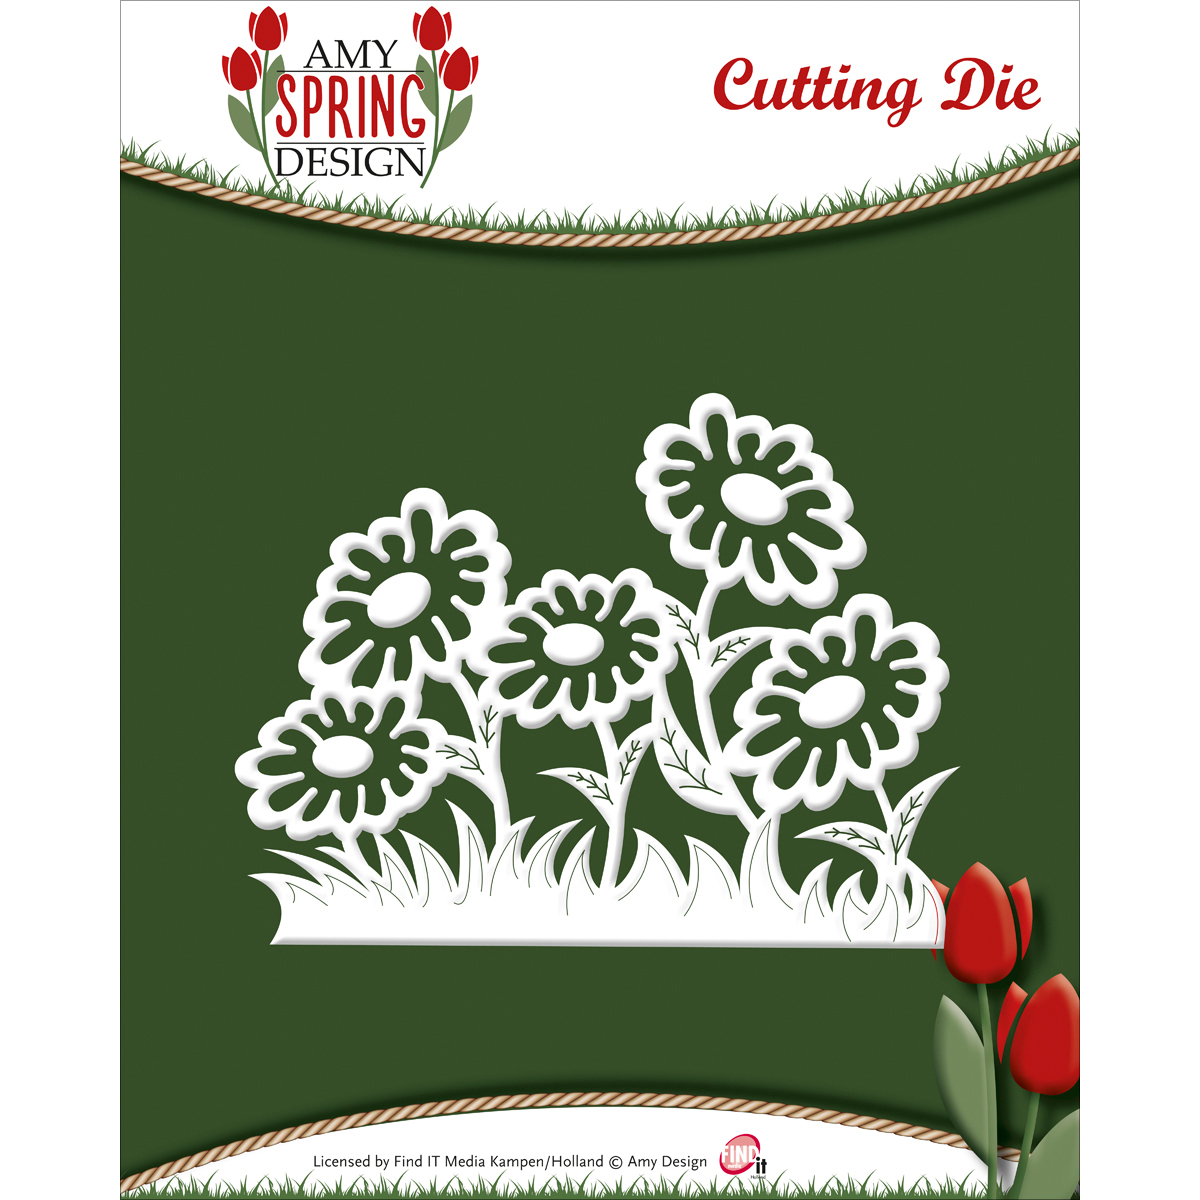 Daisies - Find It Trading Amy Design Spring Die